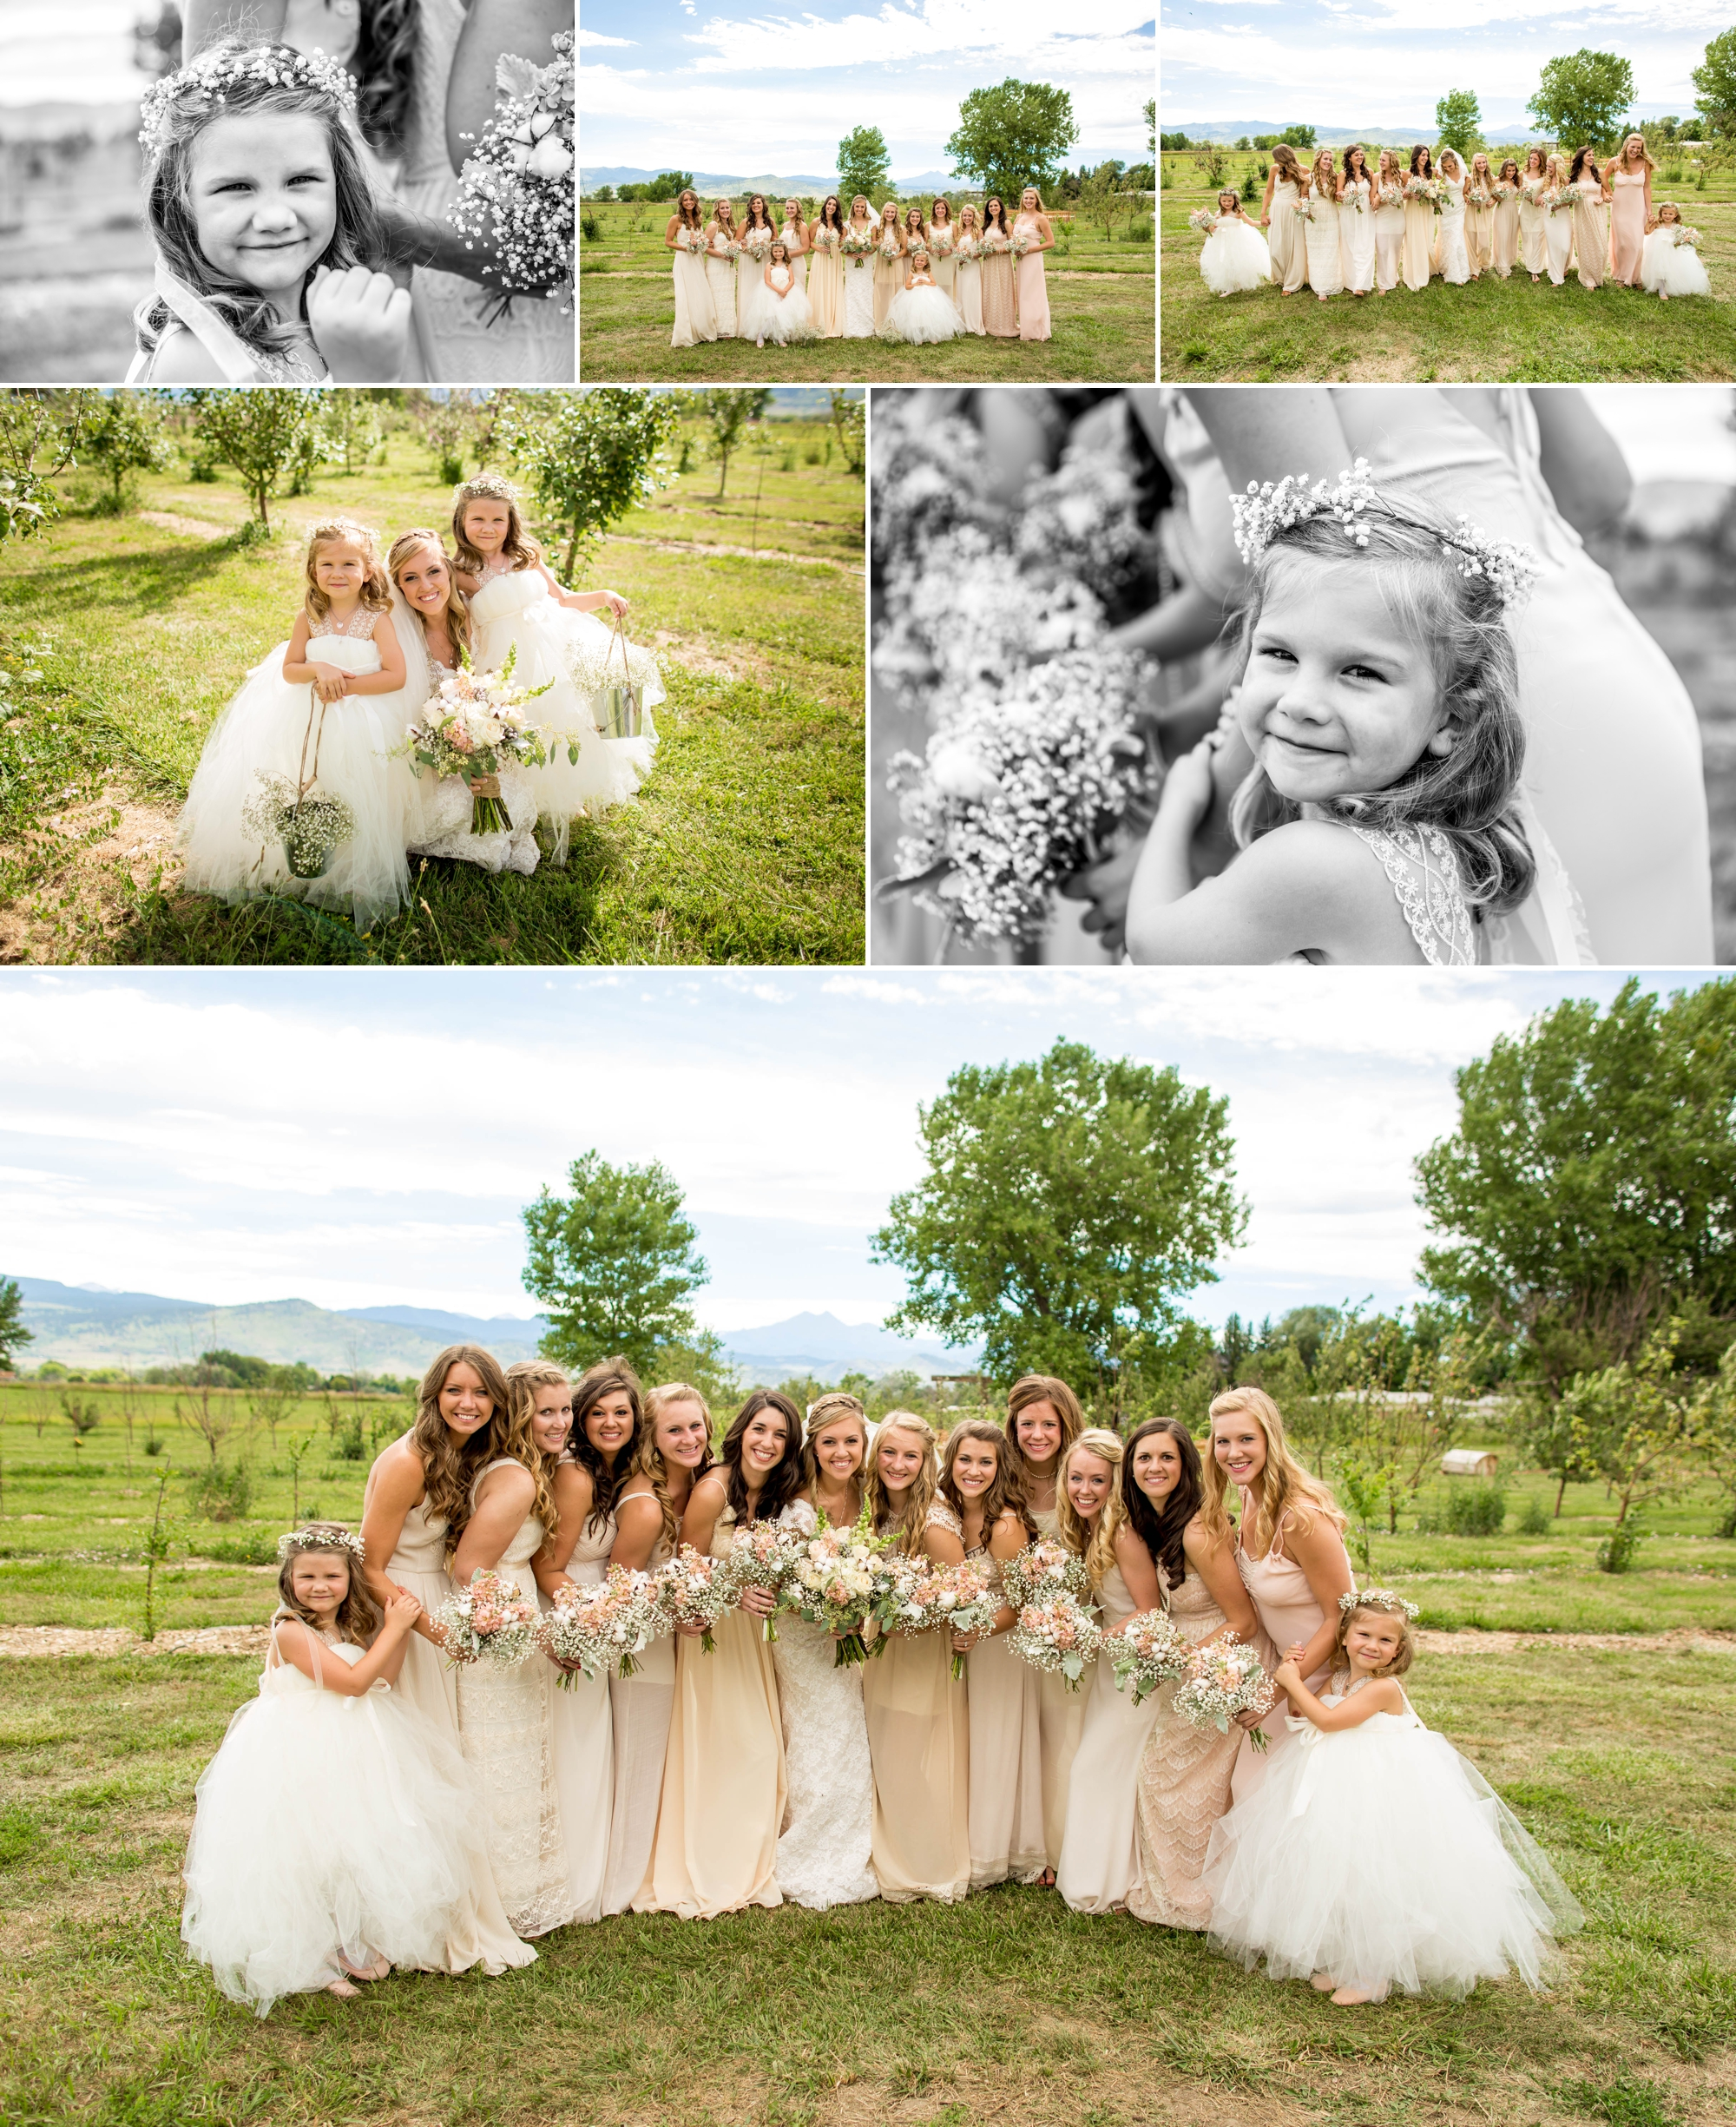 Nothing better than a bride with her best friends and those closest to her heart.